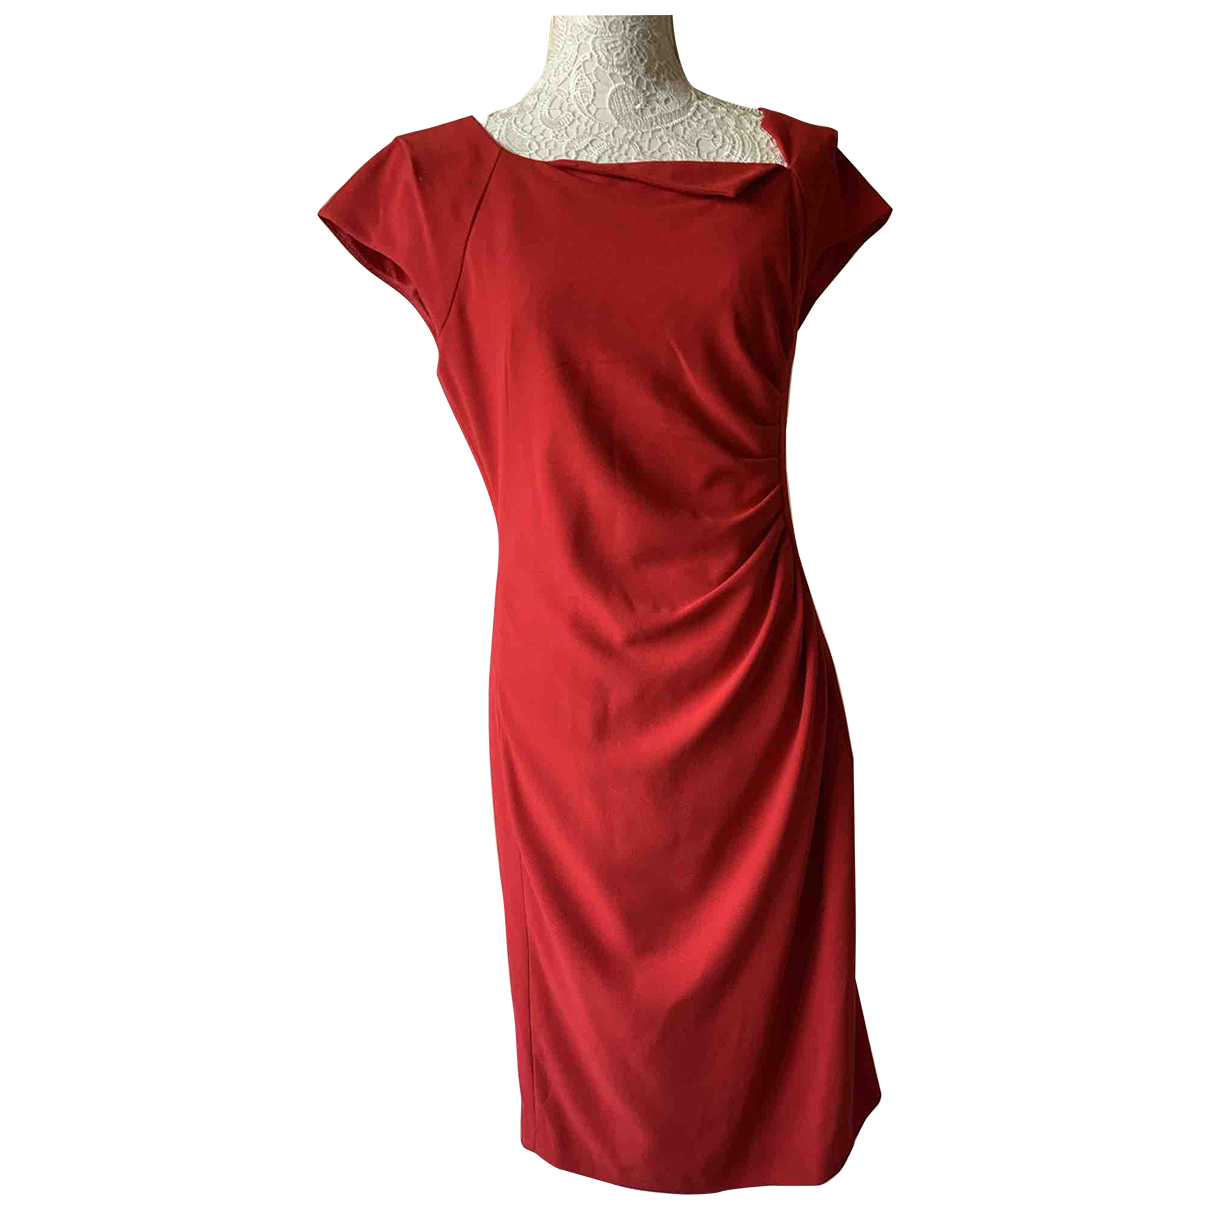 Lk Bennett N Red dress for Women 14 UK